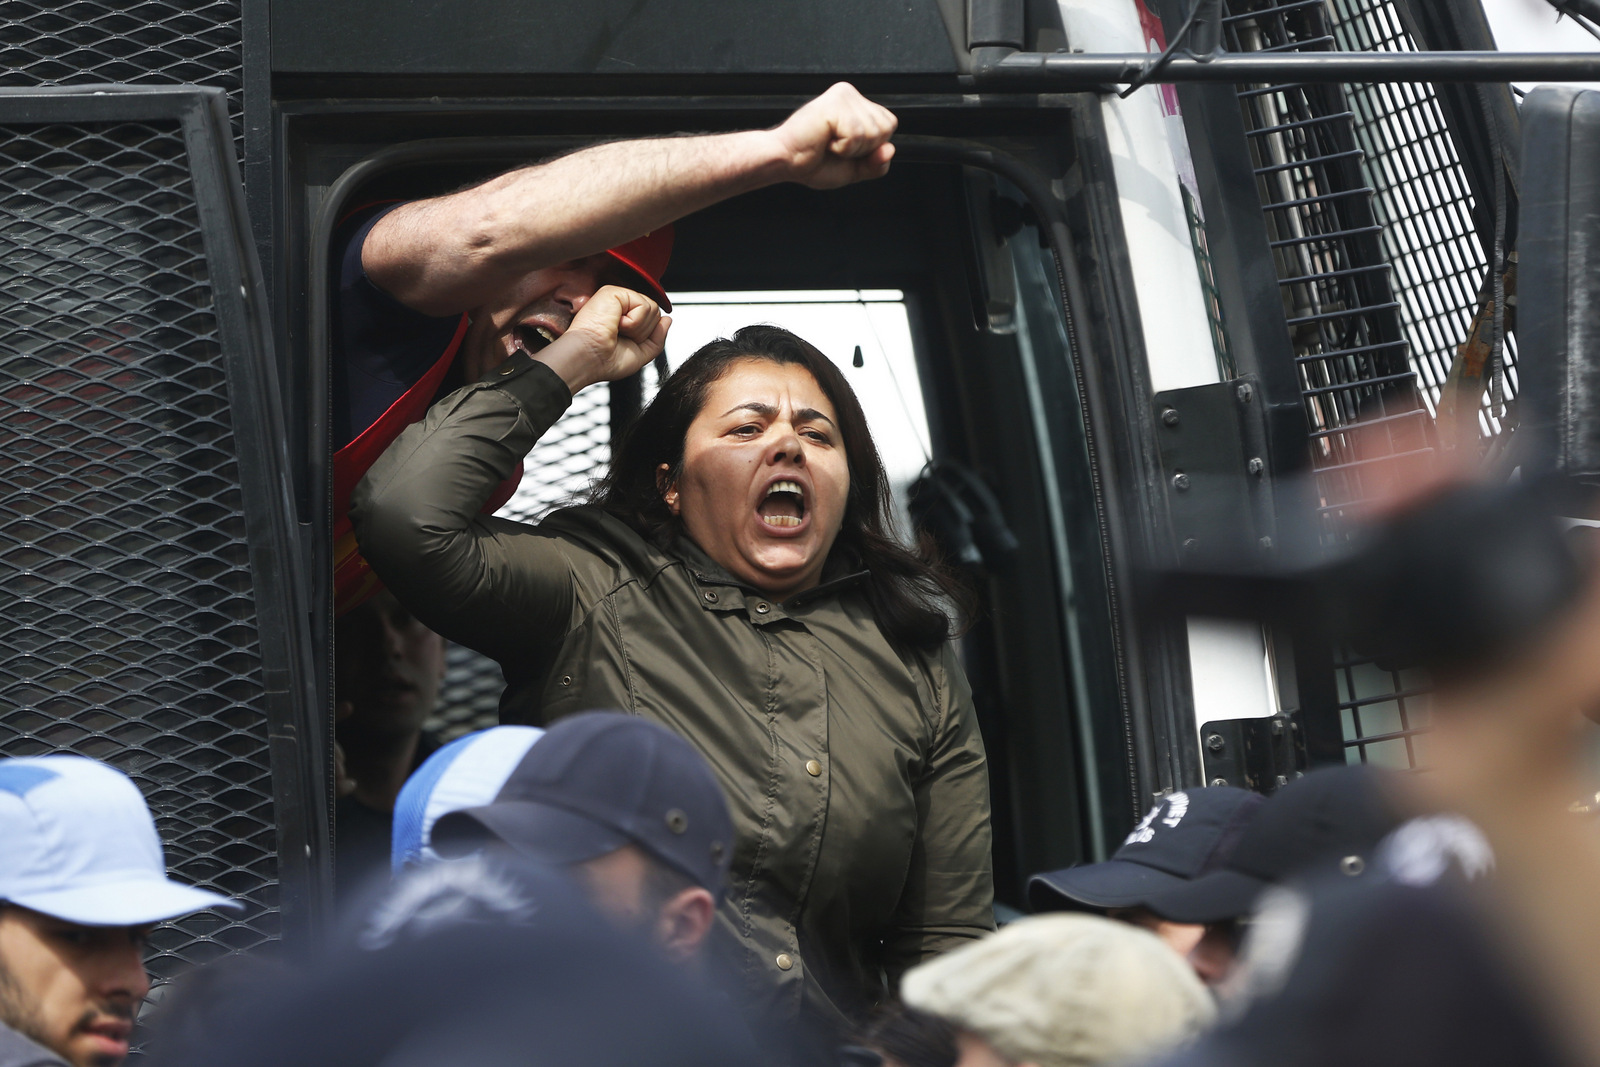 Detained protesters chant a slogan from inside a police in Istanbul, Monday, May 1, 2017. Police in Istanbul detained more than 70 people who tried to march to iconic Taksim Square in defiance of a ban on holding May Day events there. Workers and activists marked May Day with defiant rallies and marches for better pay and working conditions Monday.